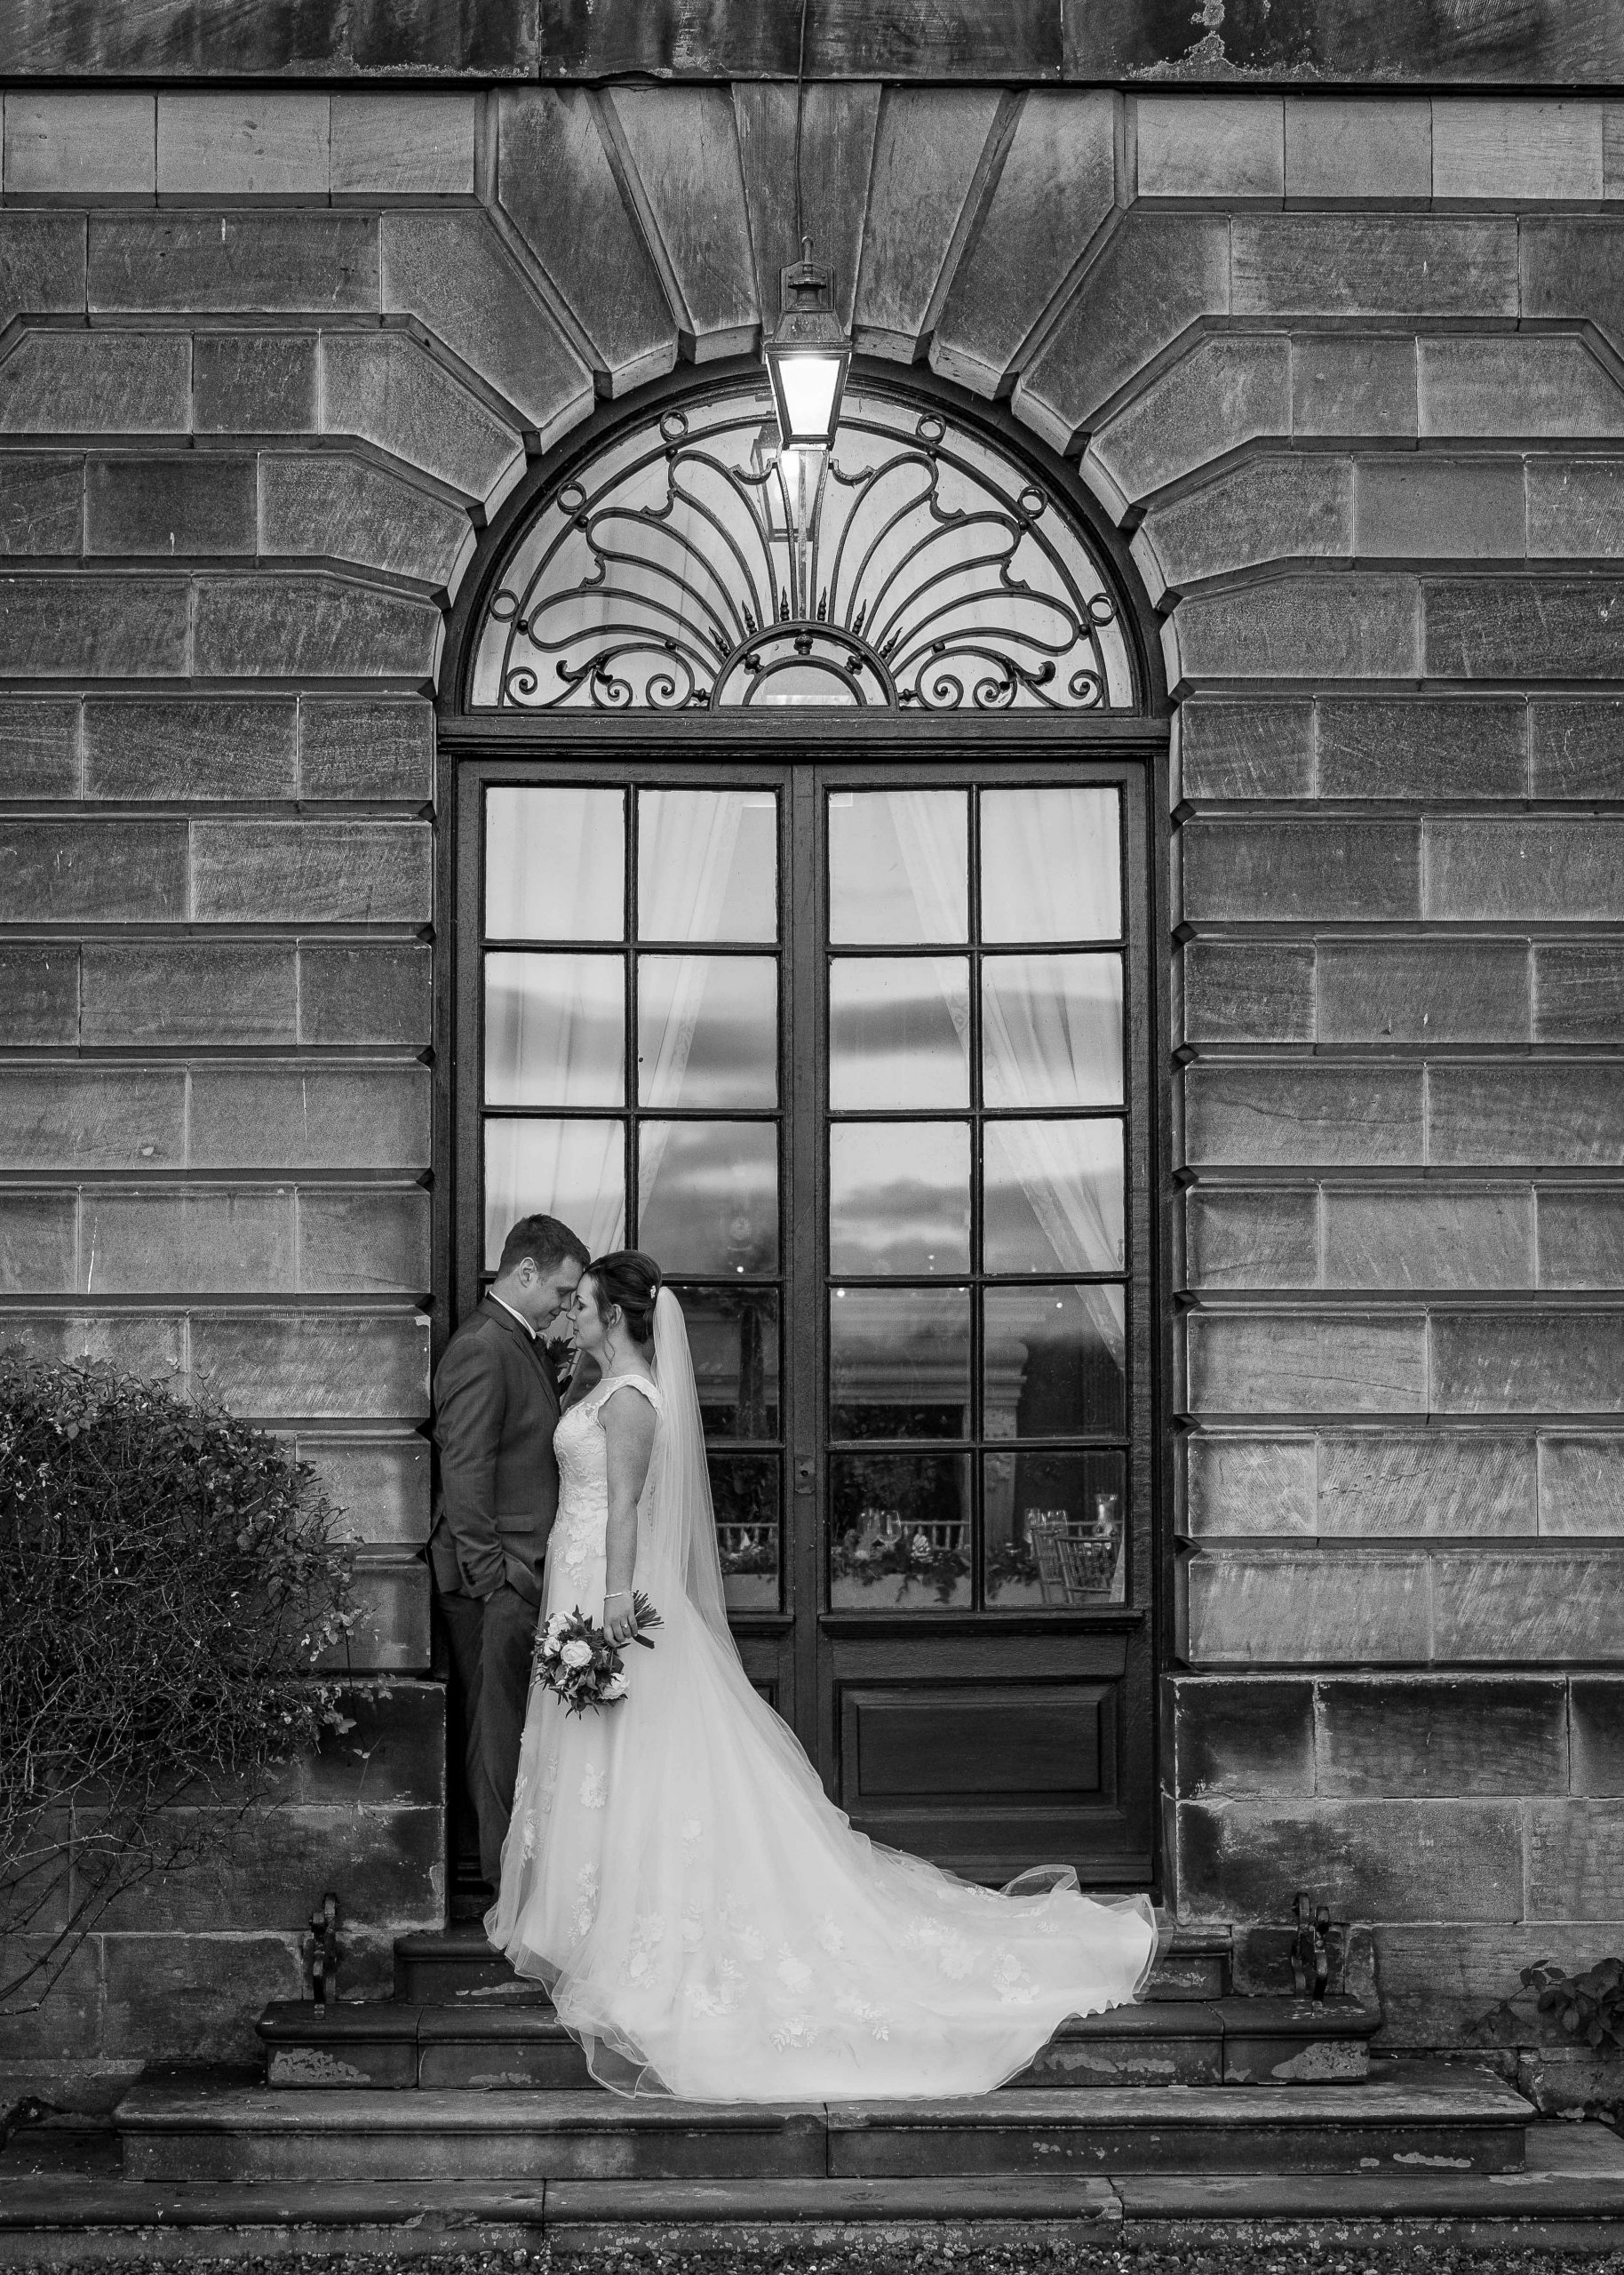 Black and white wedding photography at Crathorne Hall